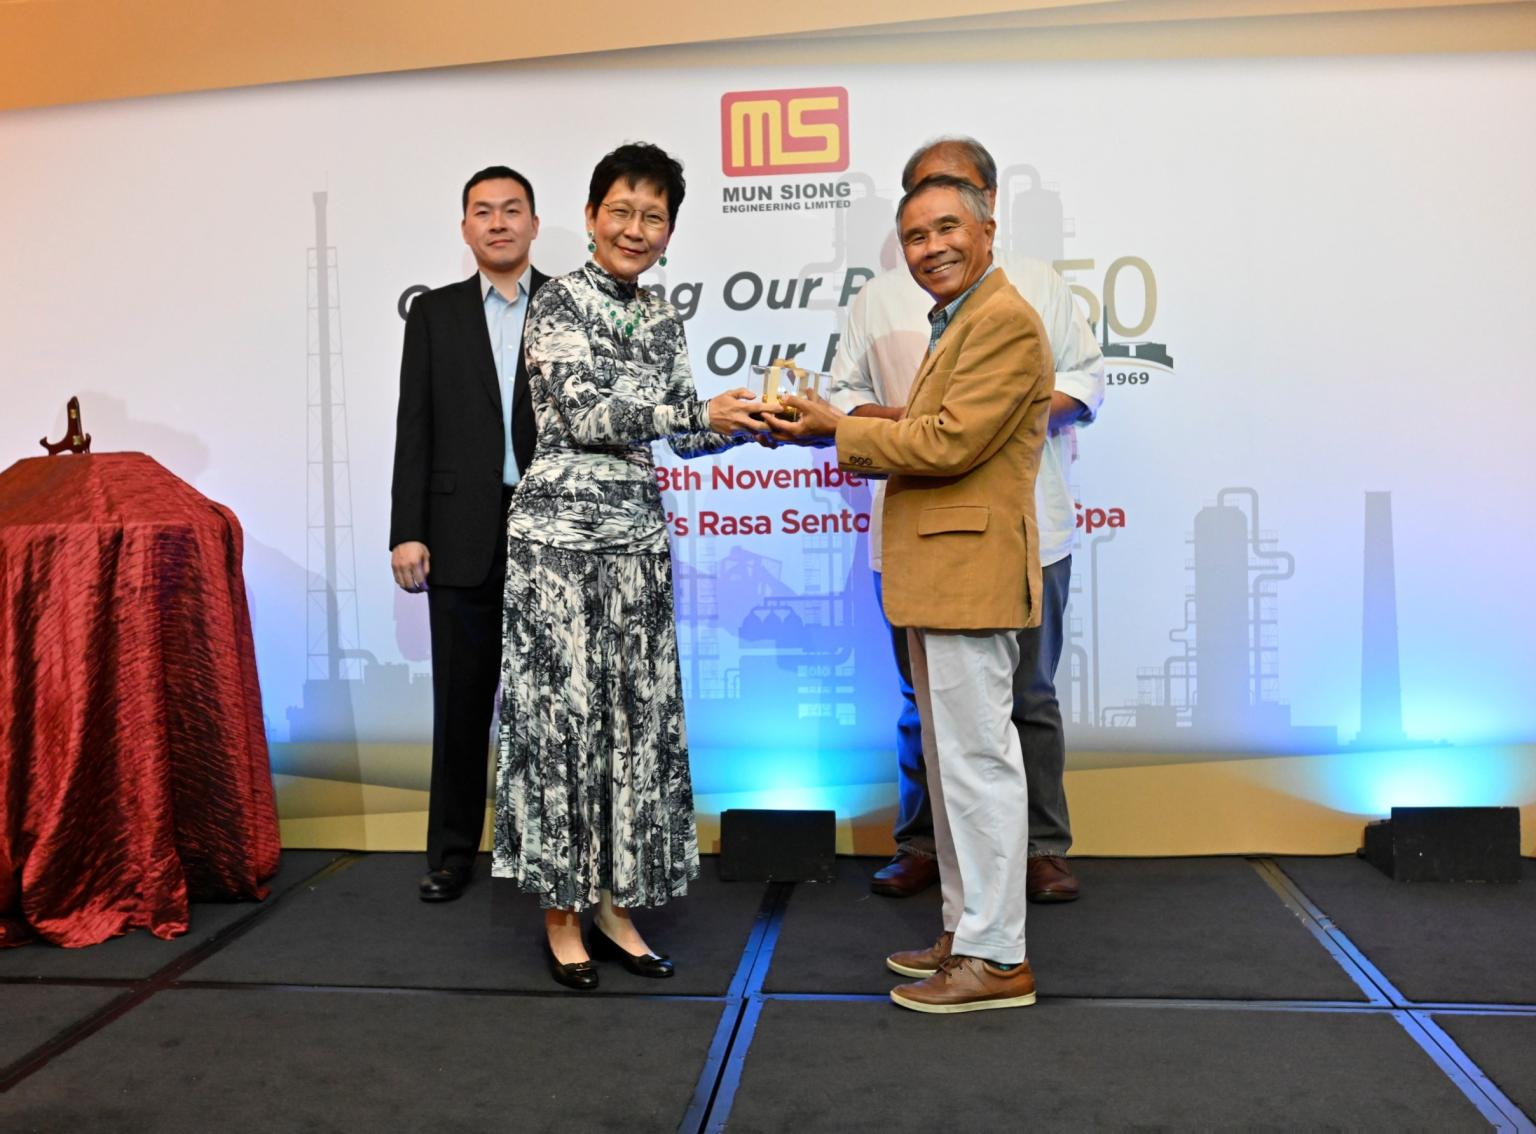 Independent Director, Mr. Sim Swee Yam receiving a token of appreciation from Executive Chairlady of Mun Siong Engineering Limited.